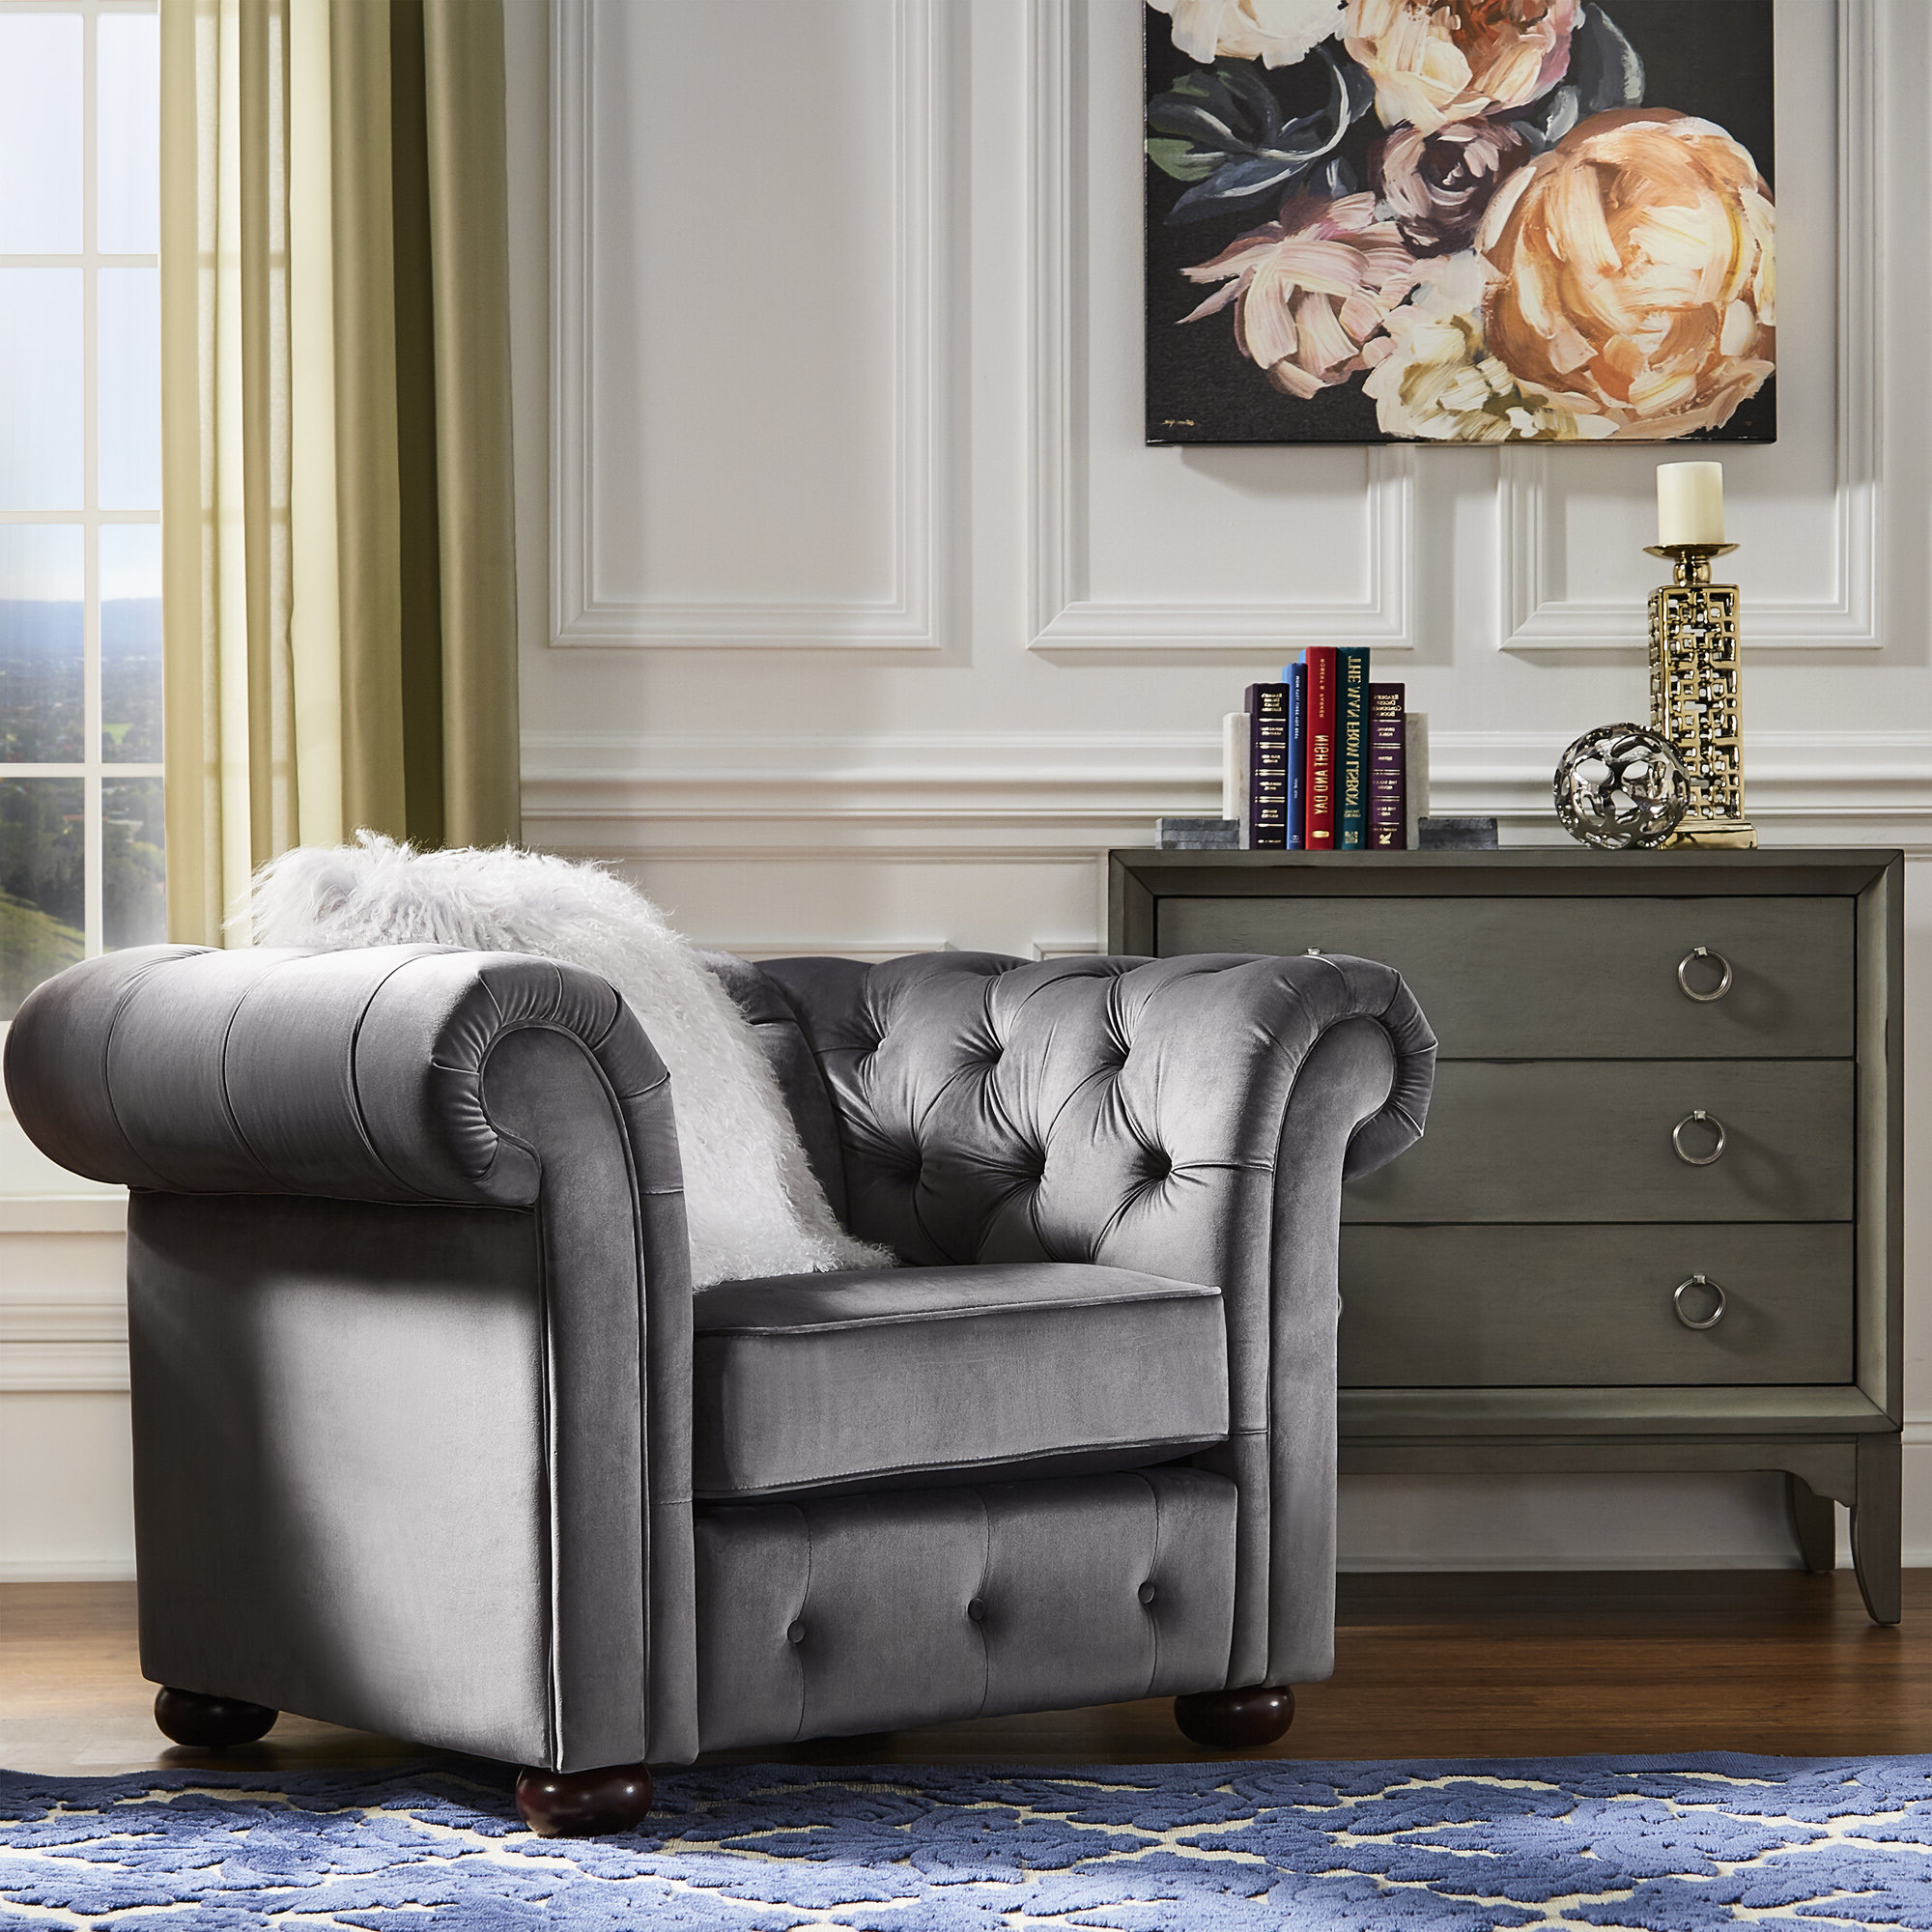 Most Recently Released Chesterfield Espresso Wood Accent Chairs You'll Love In 2021 Regarding Kjellfrid Chesterfield Chairs (View 17 of 20)